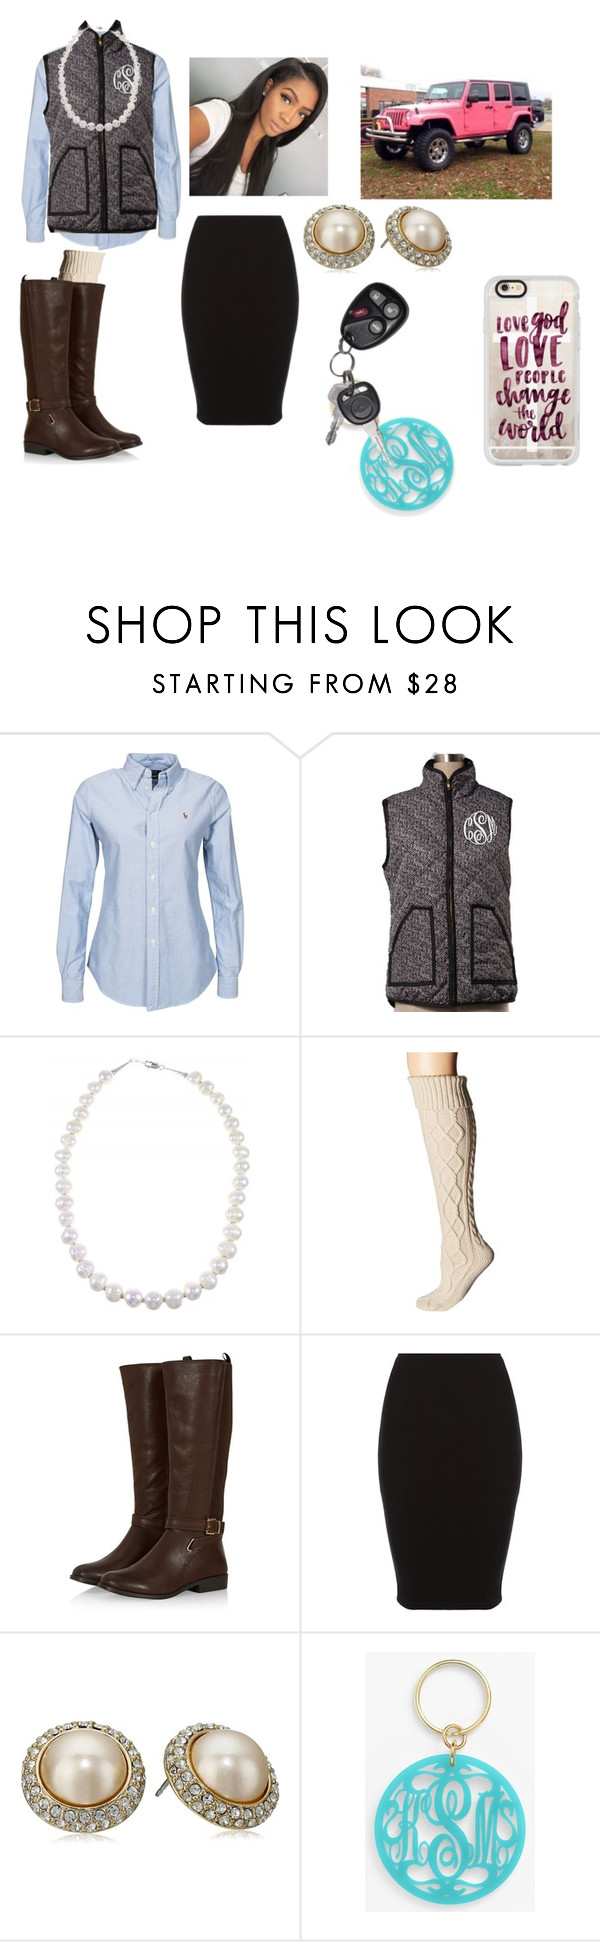 """""""Love God, Love People and Change the World"""" by chanel-xoxo123 ❤ liked on Polyvore featuring Polo Ralph Lauren, Free People, Carolee, Moon and Lola and Casetify"""